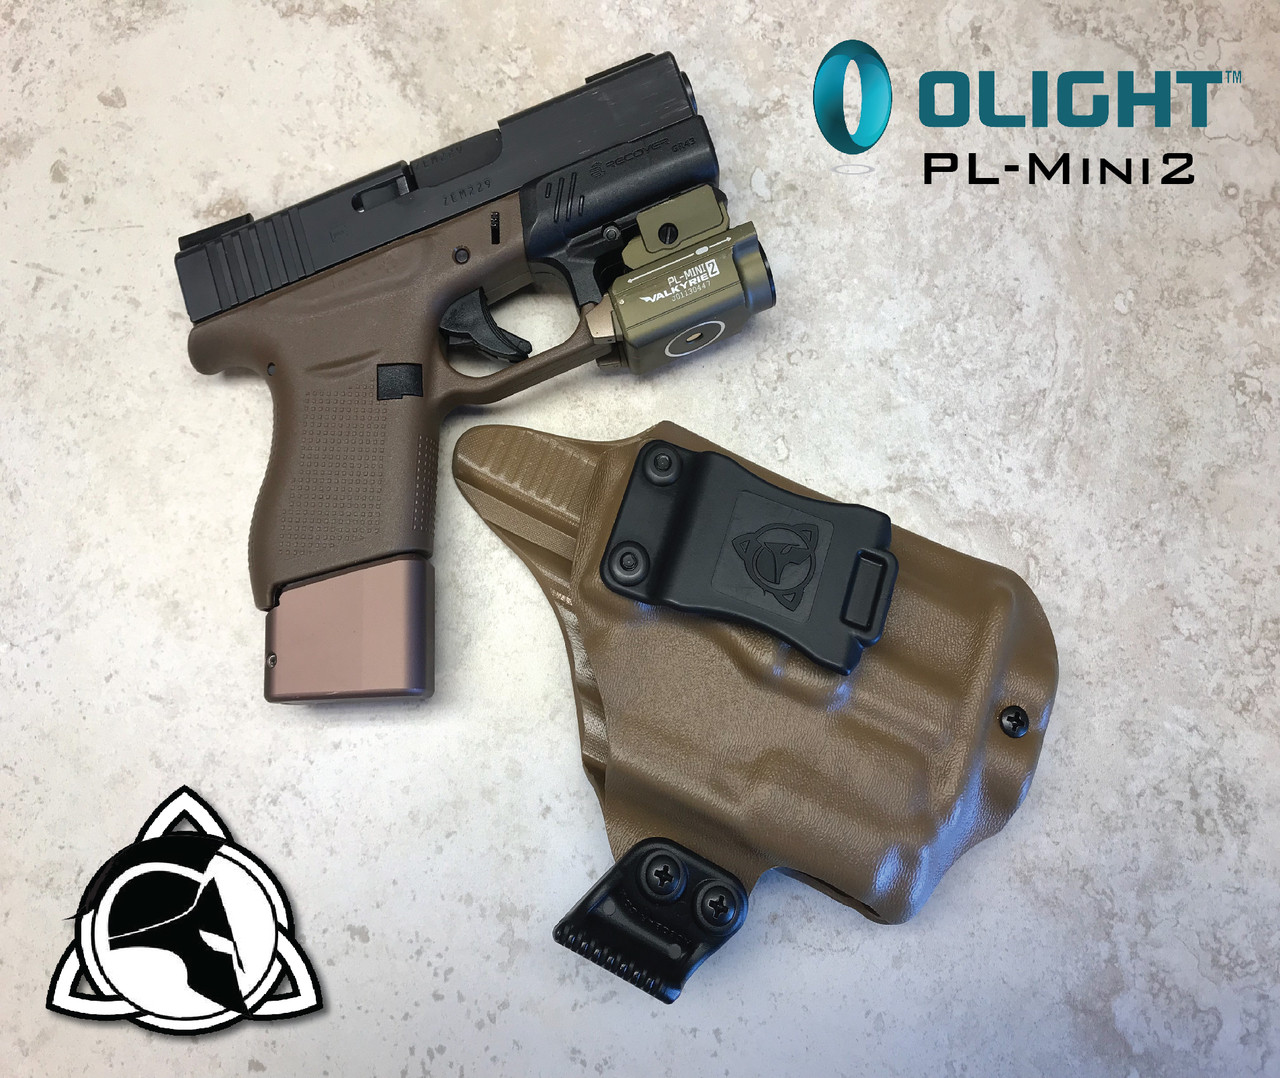 Weapon Mounted Light Carry System Glock 43 and Olight PL-Mini2 IWB Inside  the Waistband